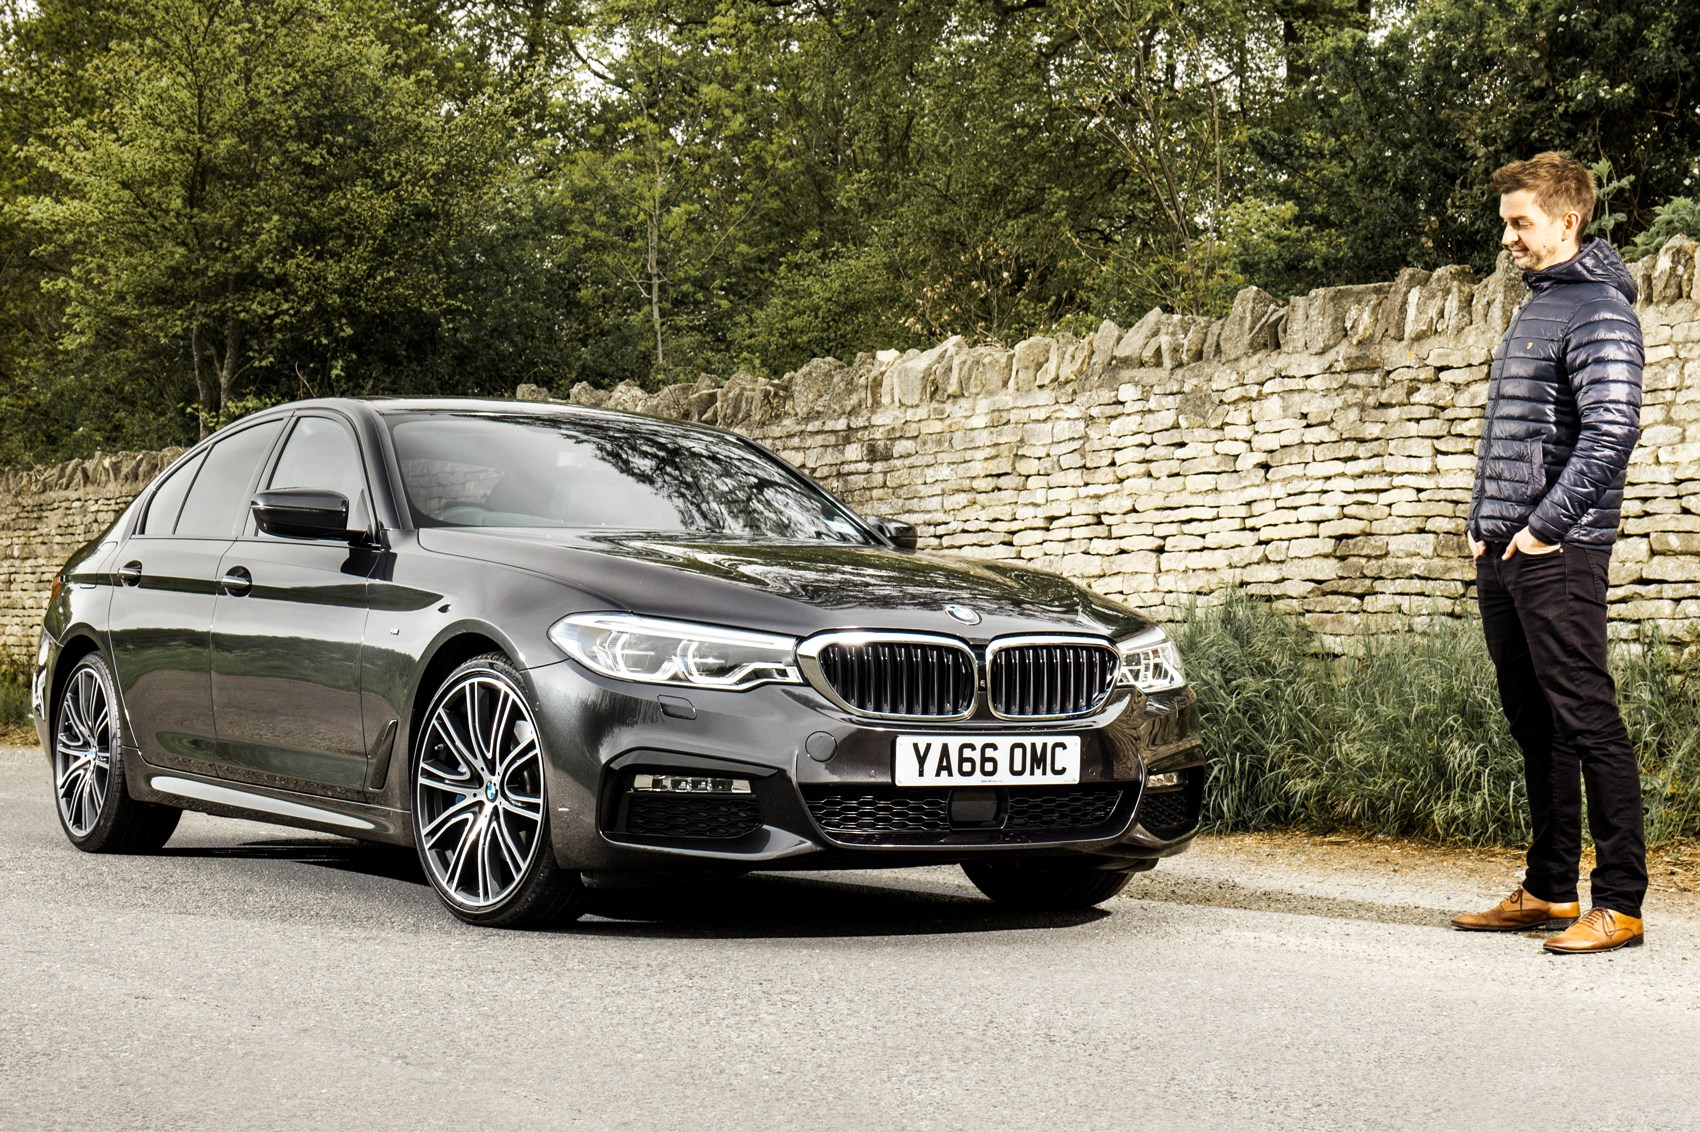 Bmw 530d Xdrive Long Term Review Car Magazine 2006 325i Under The Hood Diagram Tuning A For All Occasions Staff Writer Jake Put 5 Series To Use As Carriage His Sisters Wedding